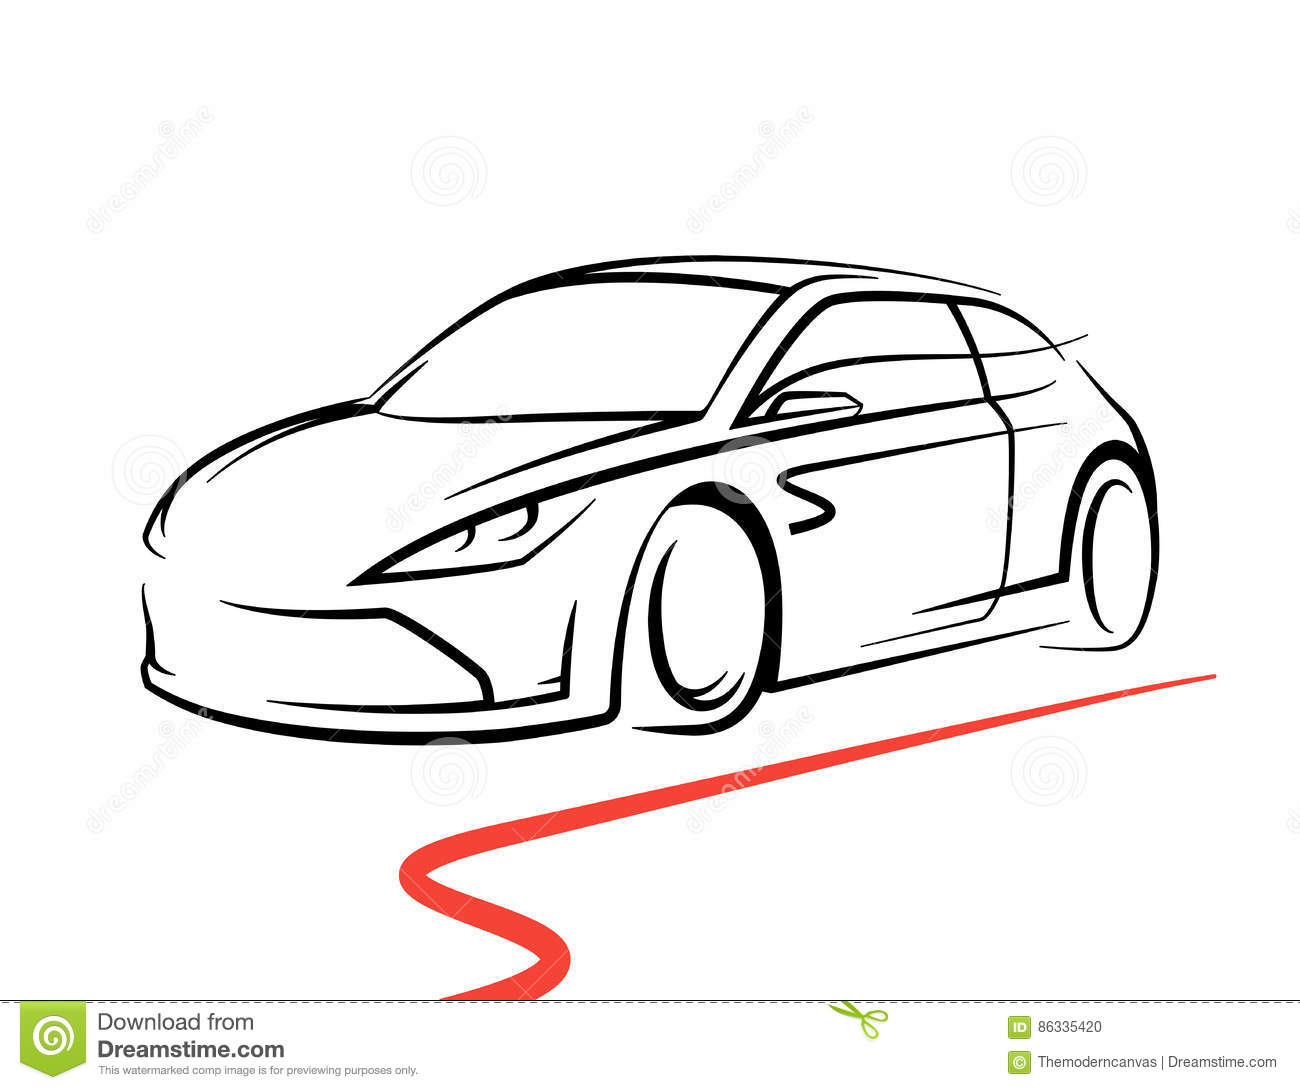 Concept Car Drawing Supercar Sports Vehicle Line Style Silhouette on sports car illustration